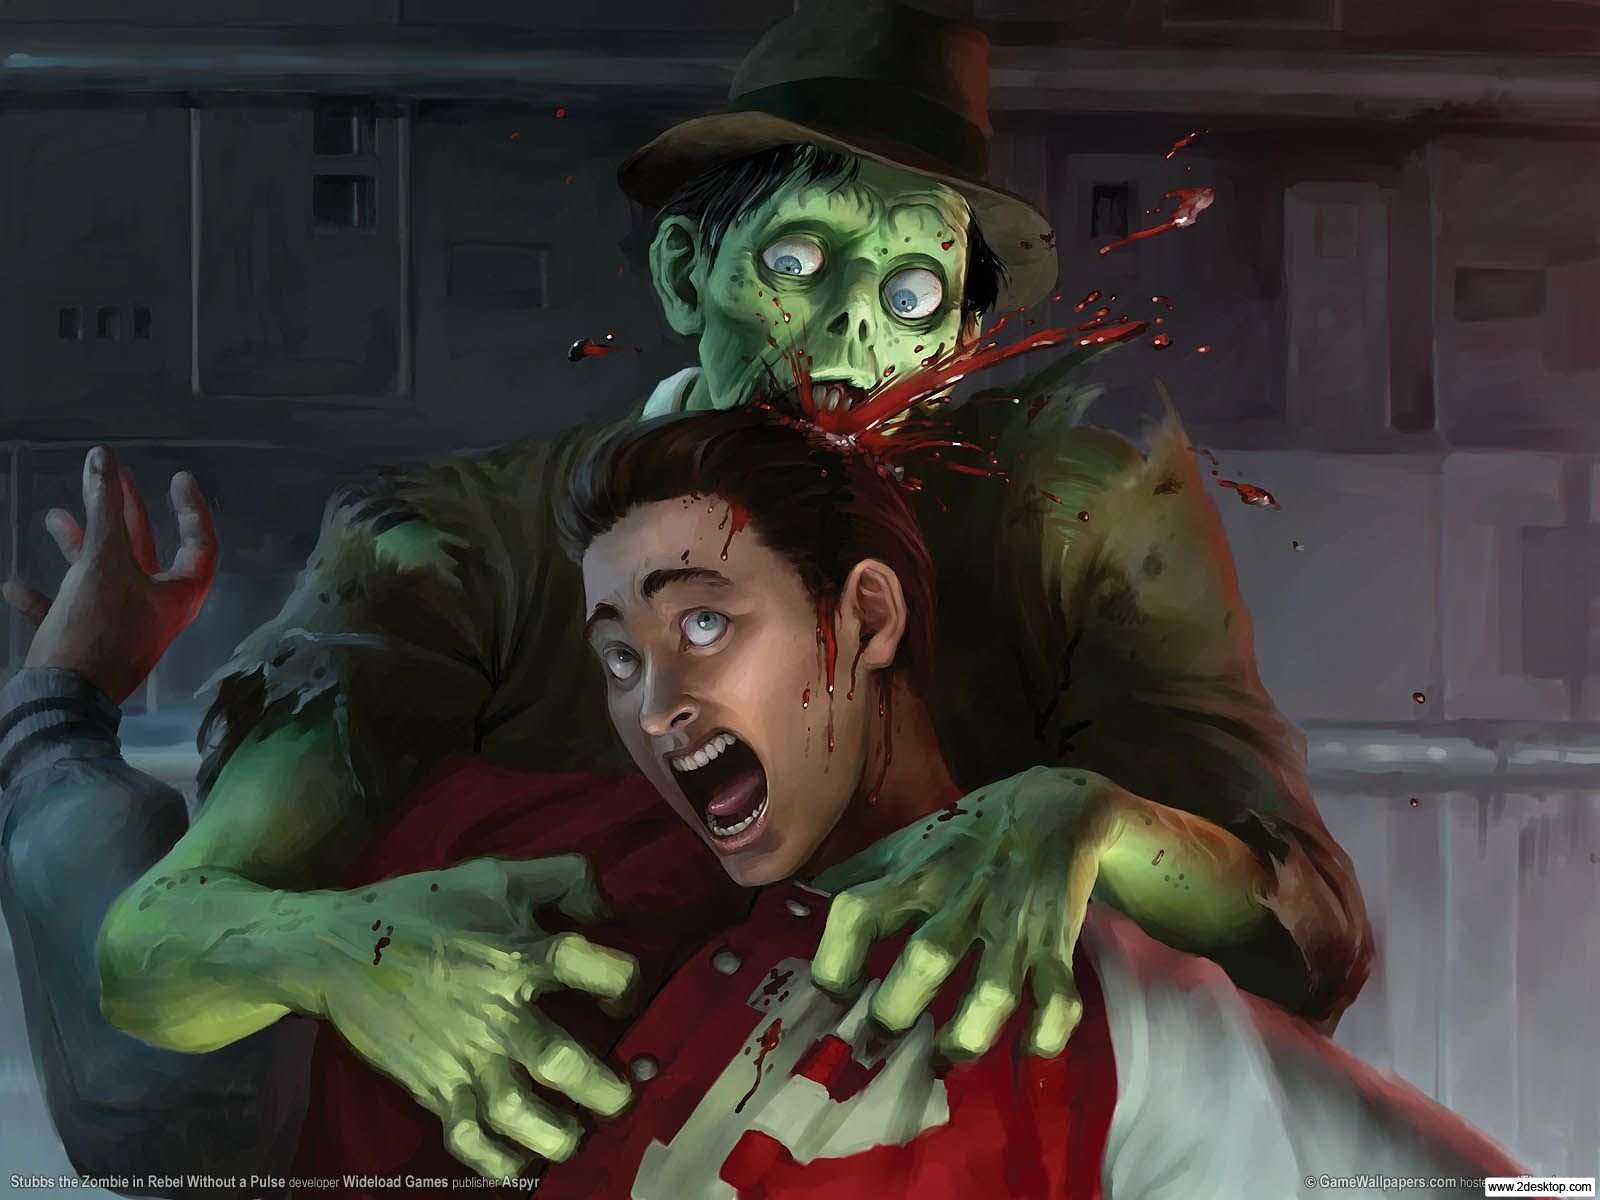 Image du jeu vidéo Stubbs the Zombie in Rebel Without a Pulse